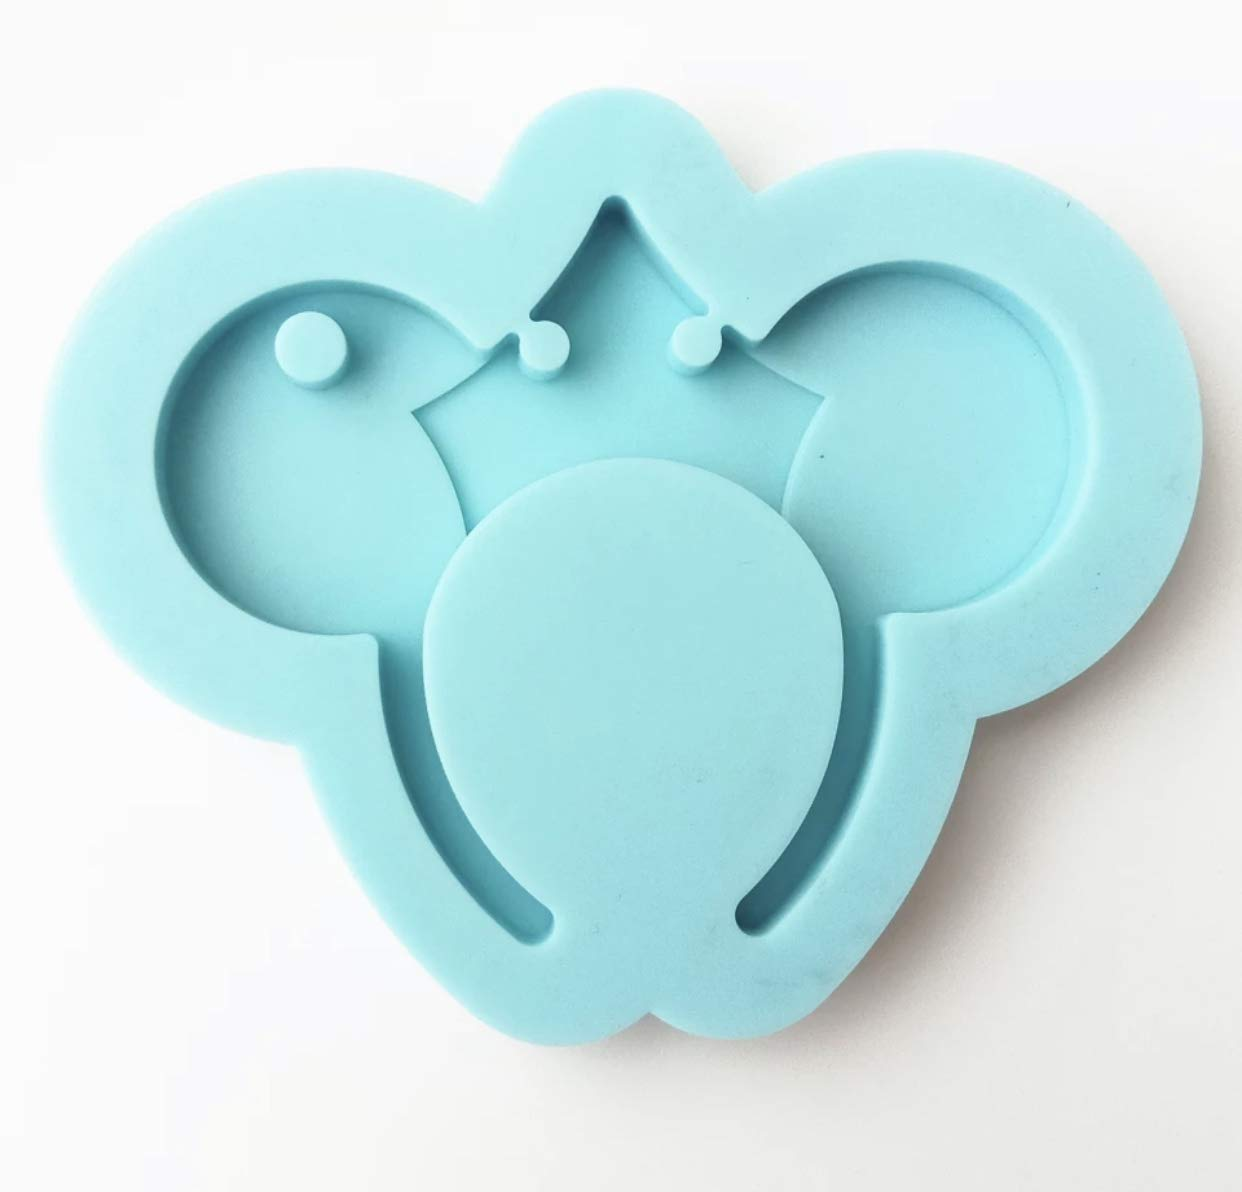 3 Point Crown Large Headband Silicone Keychain Mold Perforated Resin Clay Mold Crafts Tools Moulds for Plaster Silicone Keyring Epoxy Mold